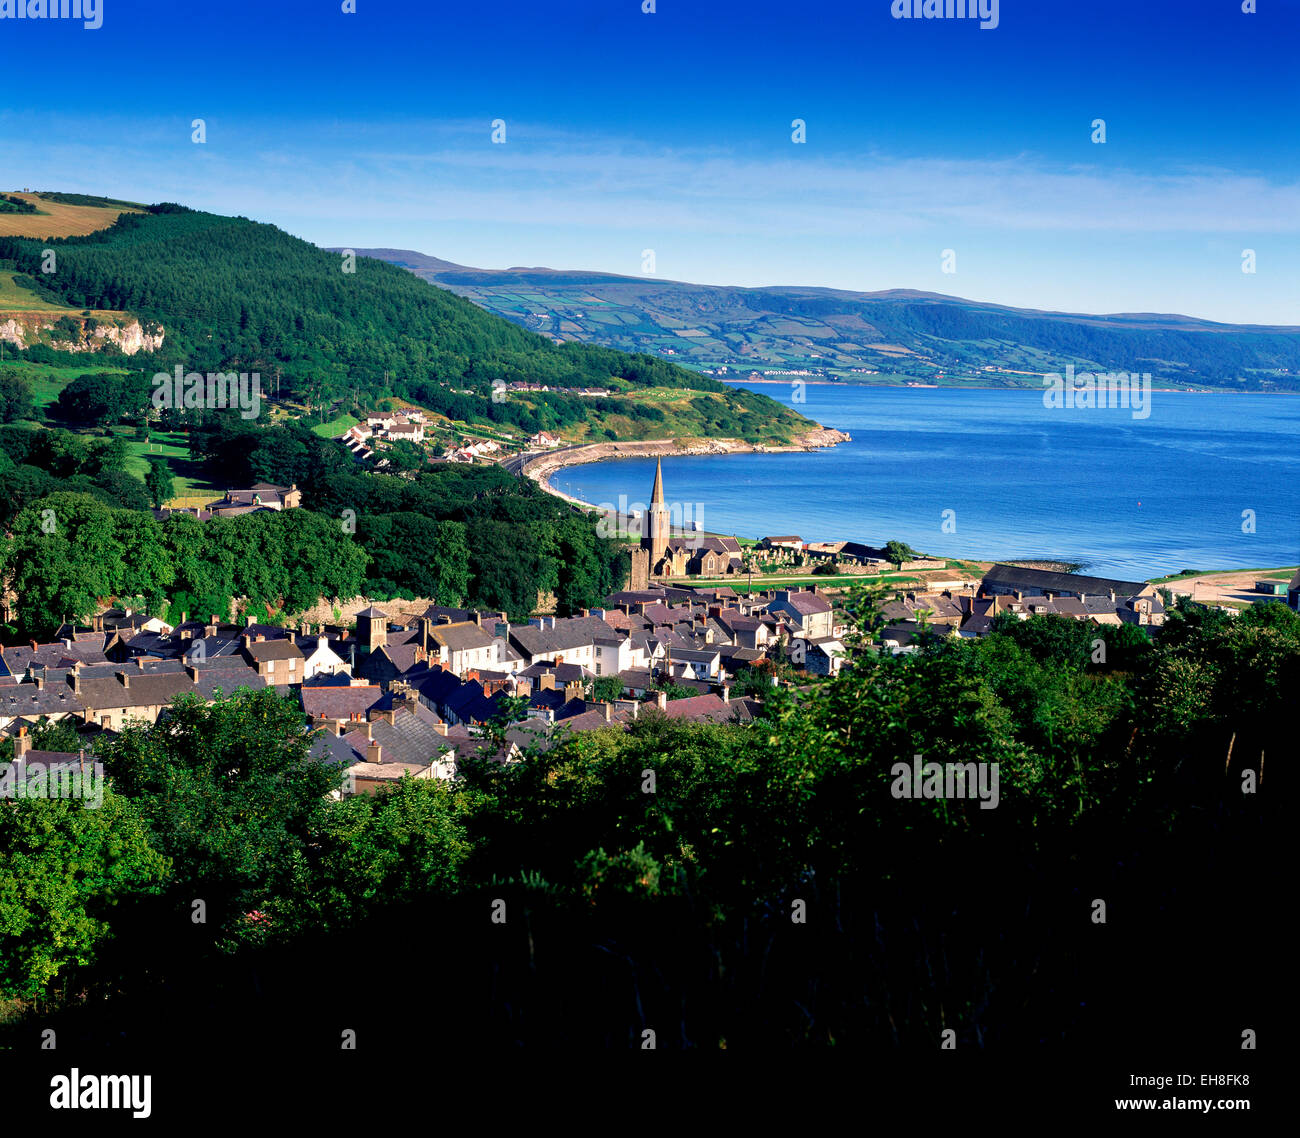 glenarm antrim coast co antrim northern ireland stock photo royalty free image 79478540 alamy. Black Bedroom Furniture Sets. Home Design Ideas